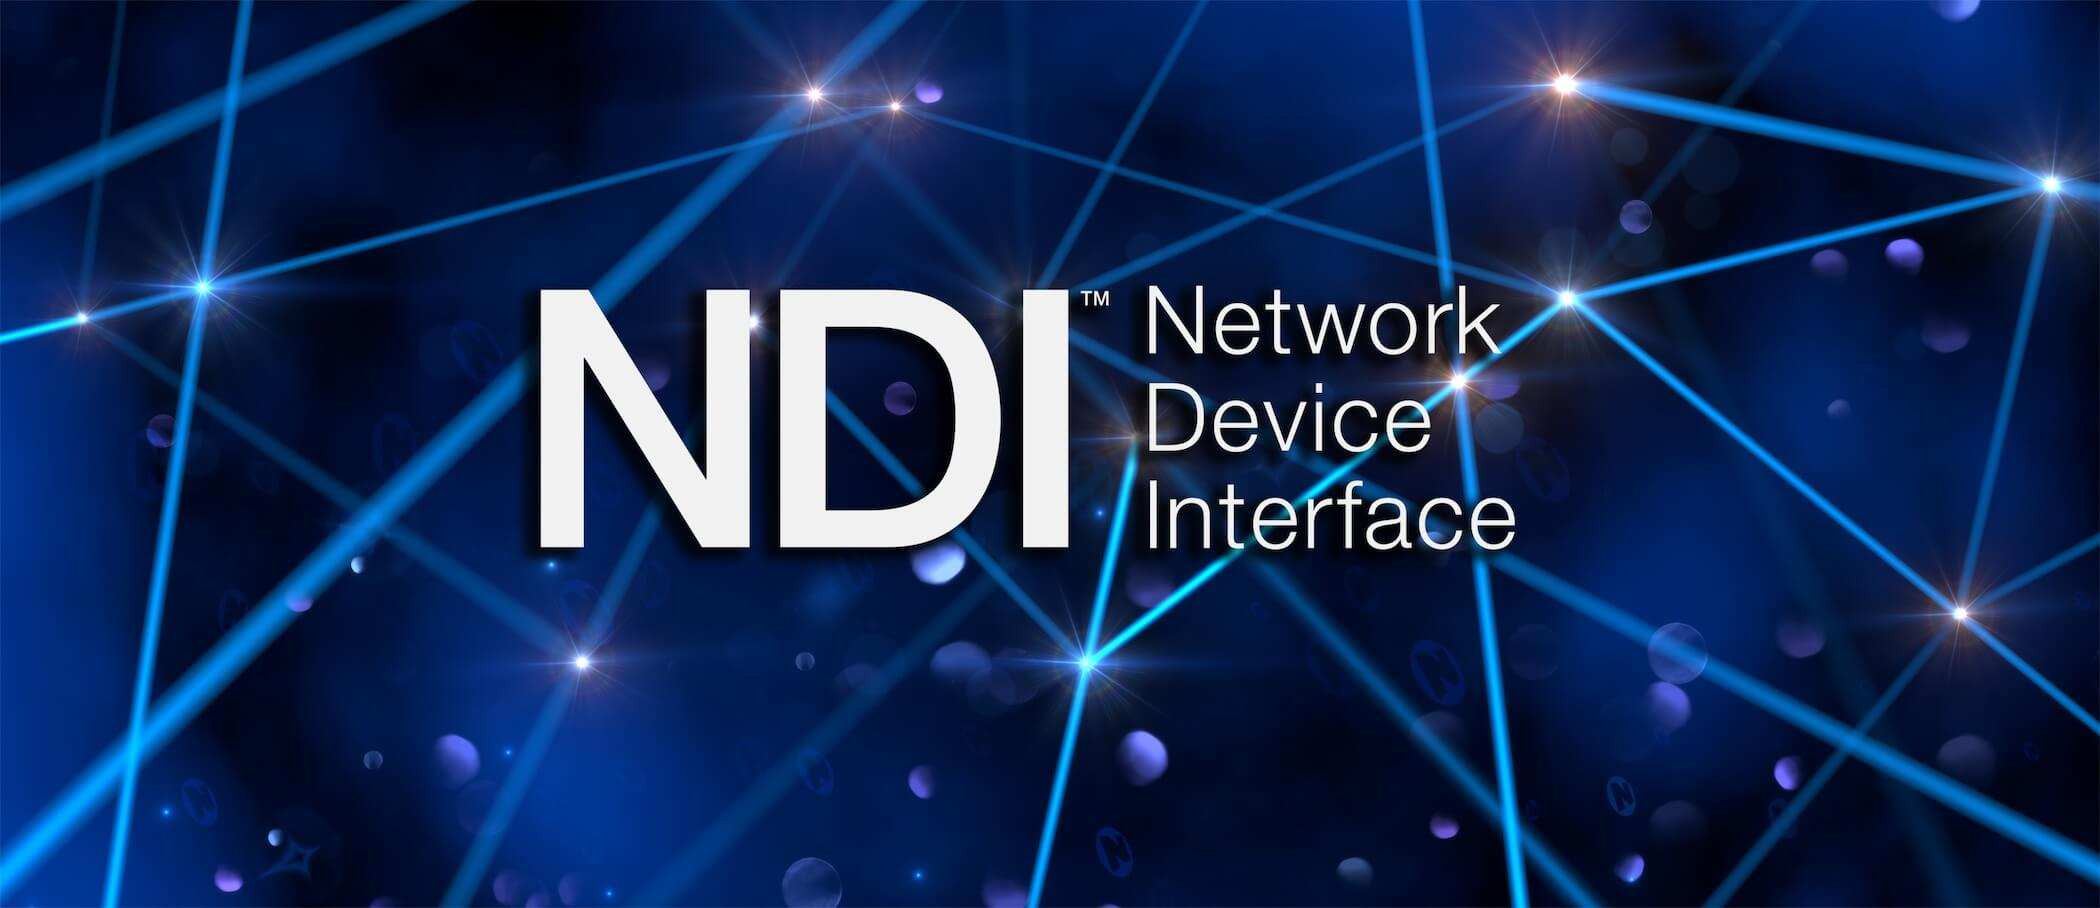 Connecting Adobe Premiere to vMix with Newtek NDI! - vMix Blog